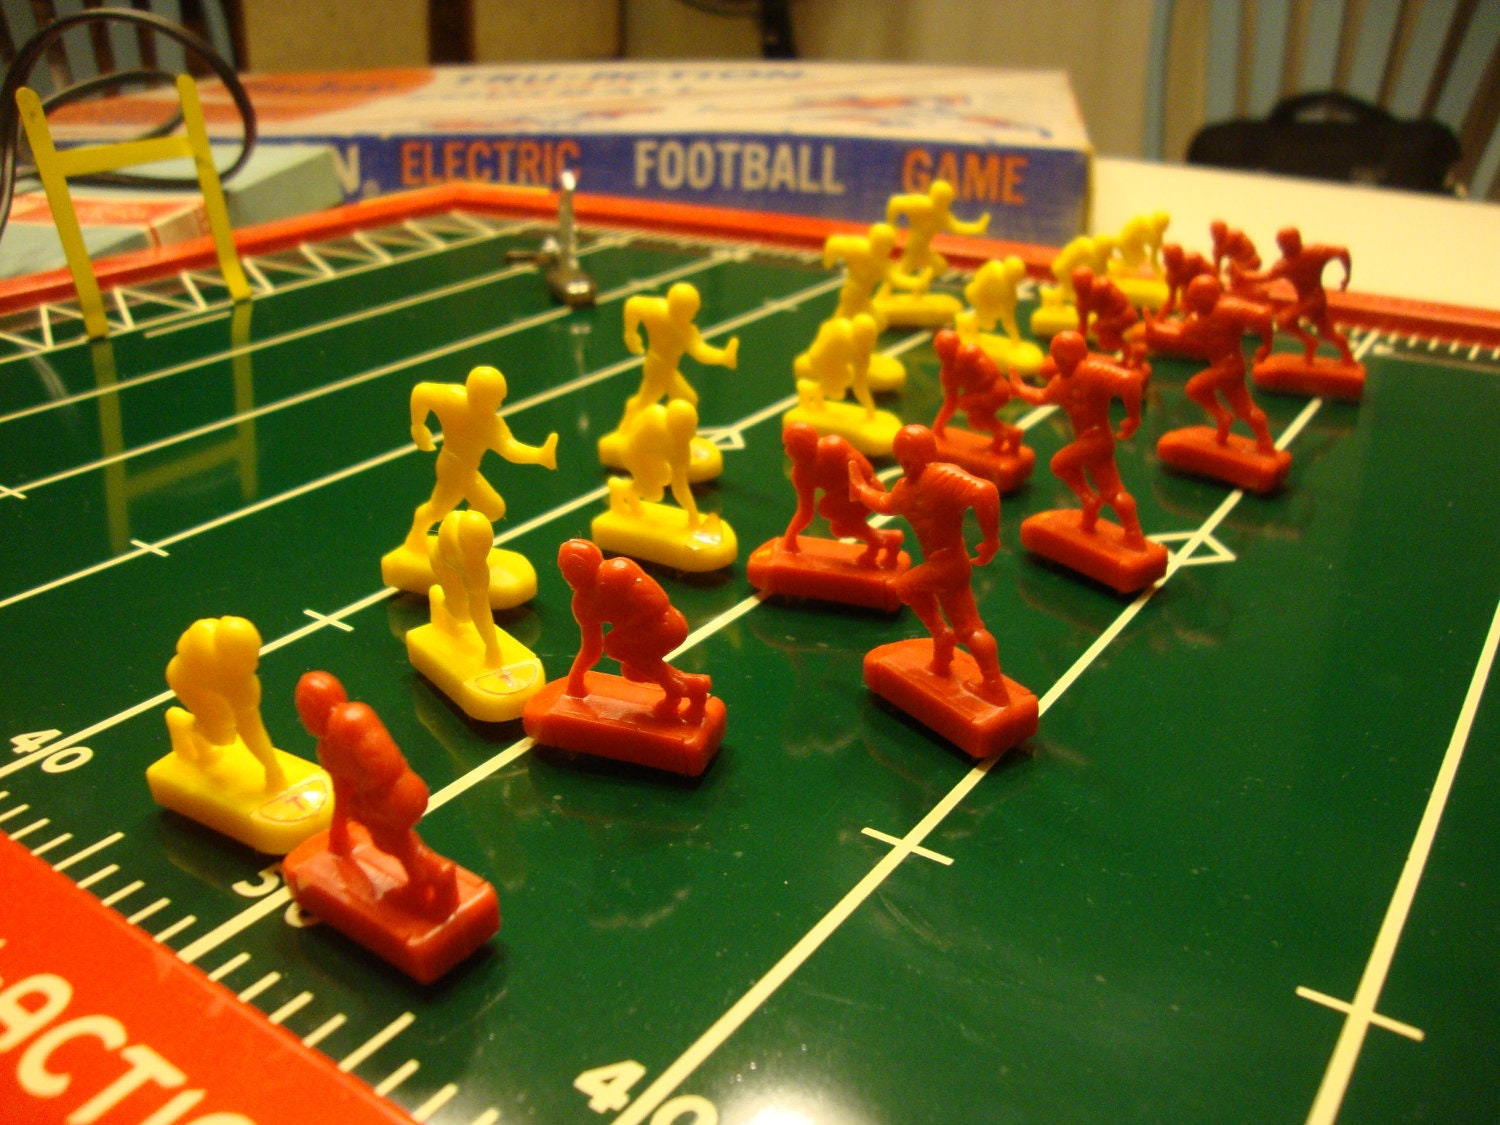 VINTAGE TRU-ACTION ELECTRIC FOOTBALL GAME - YouTube